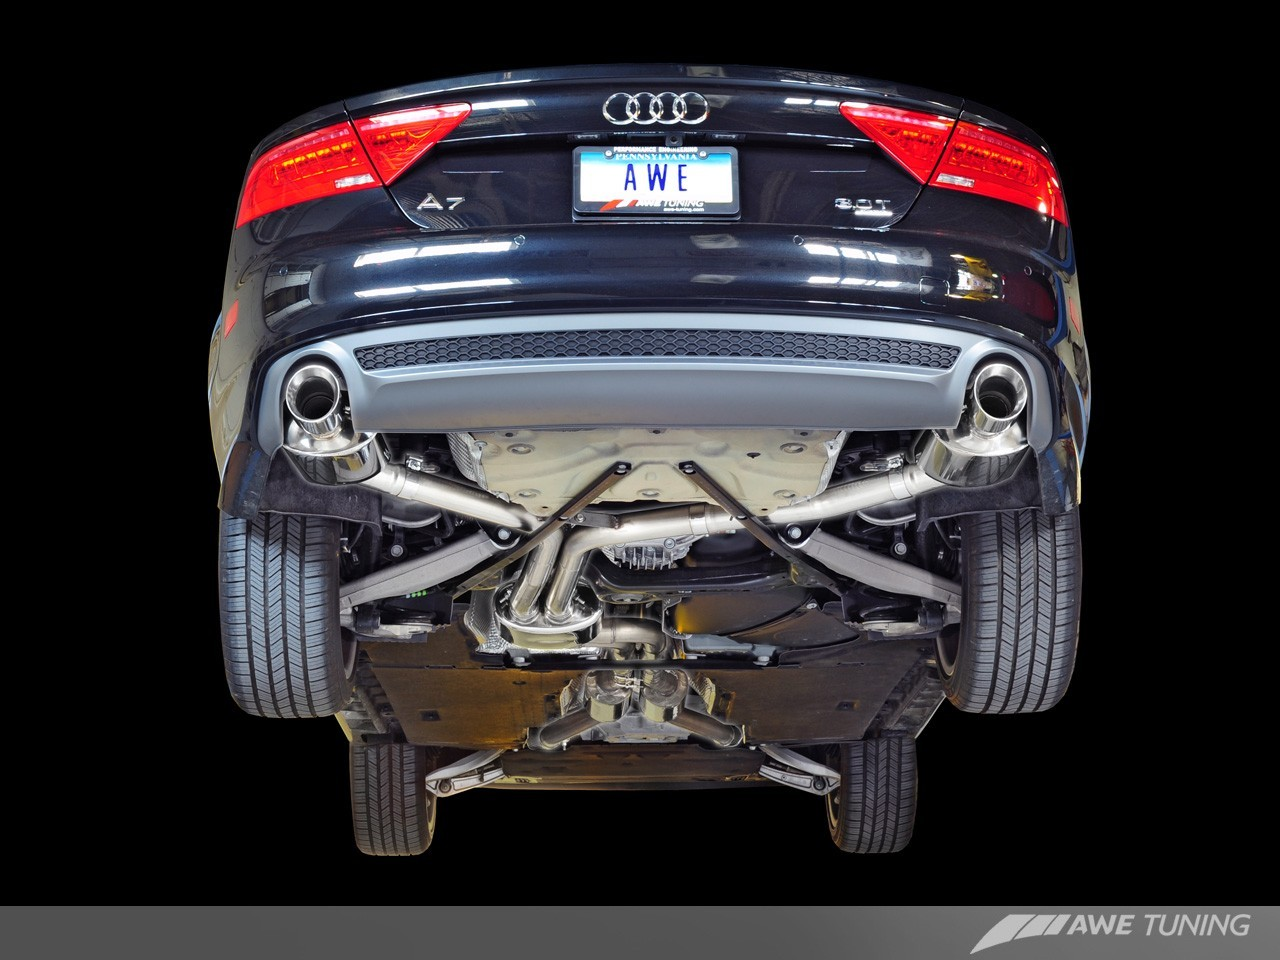 awe exhaust tuning undershot touring edition AWE-A7-3.0T-EXHAUST_GROUP